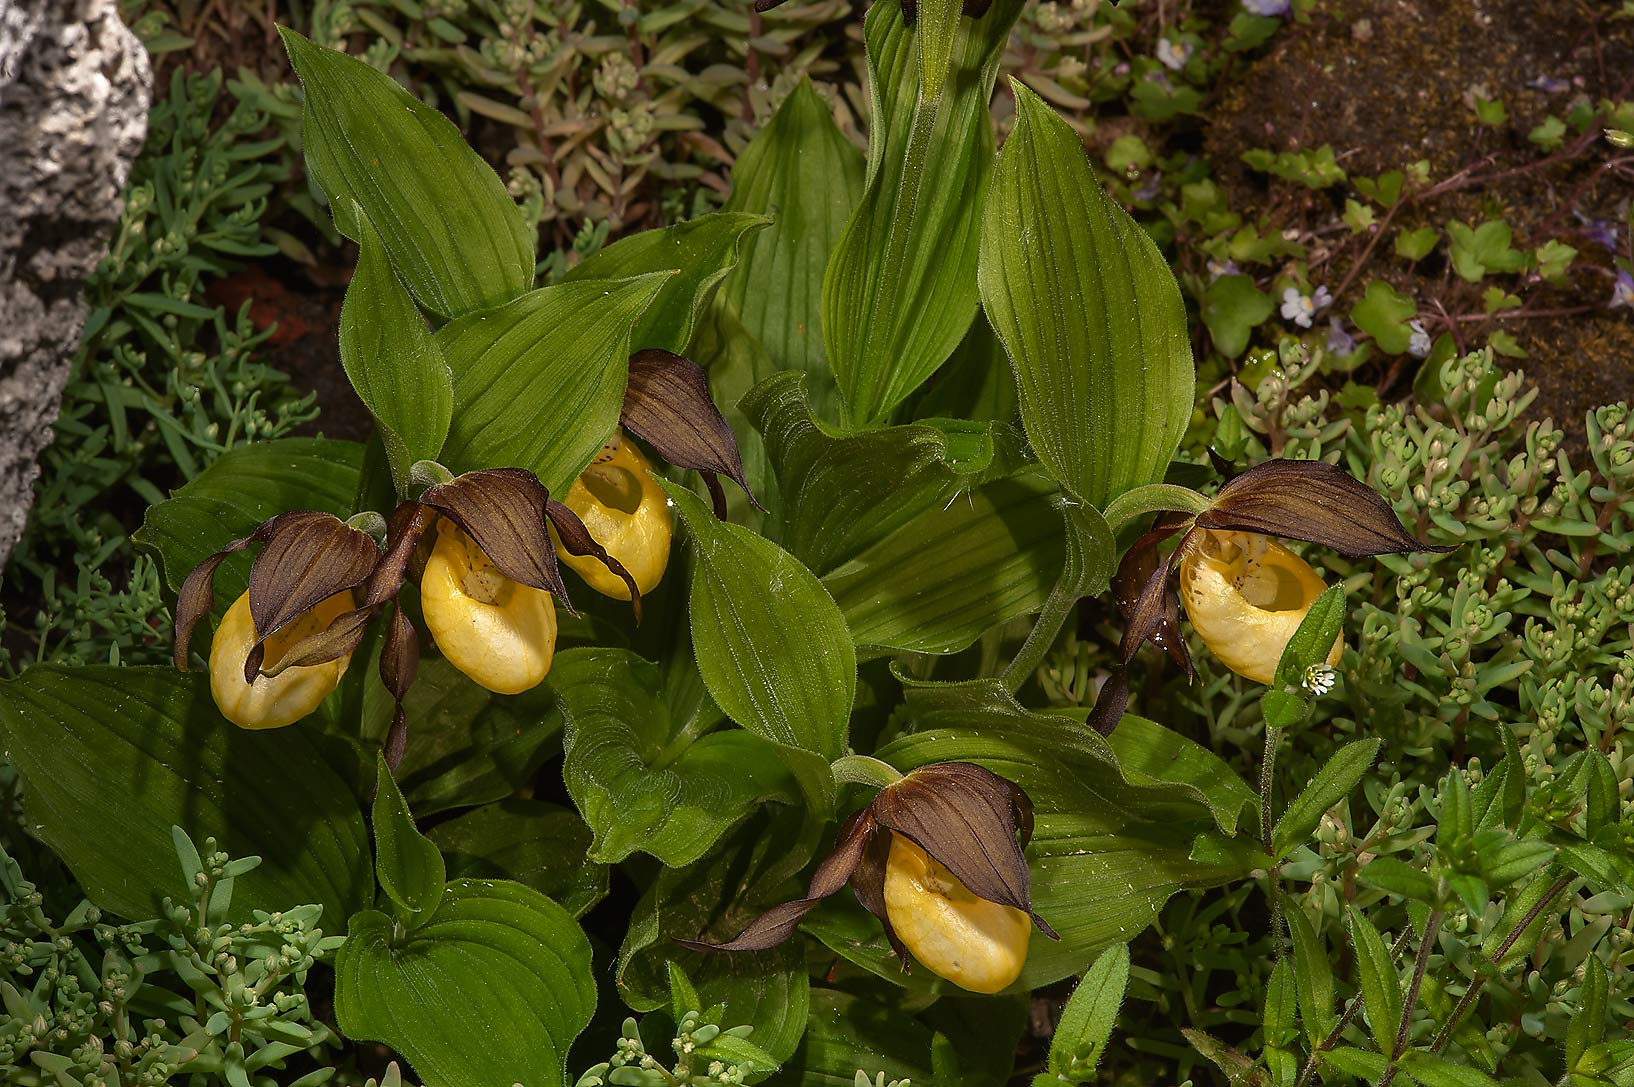 Yellow Lady's-Slipper orchids (Cypripedium...Institute. St.Petersburg, Russia